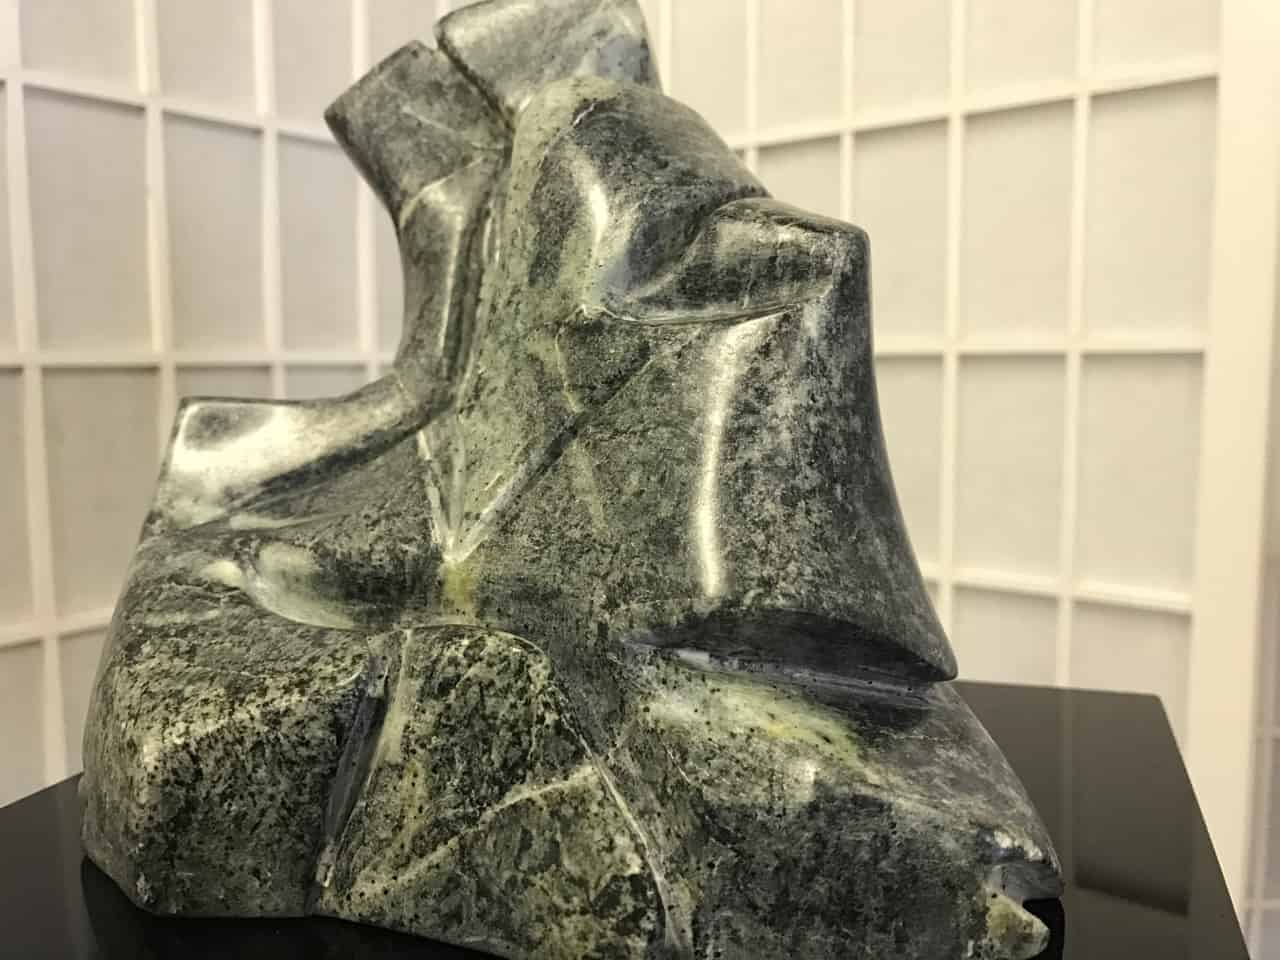 Joy Cameron's soapstone sculpture 'Paol and Francesca' recalls the loers in Dante's Inferno who read aloud to each other until their feelings overtook their words. Photo by Kate Abbott